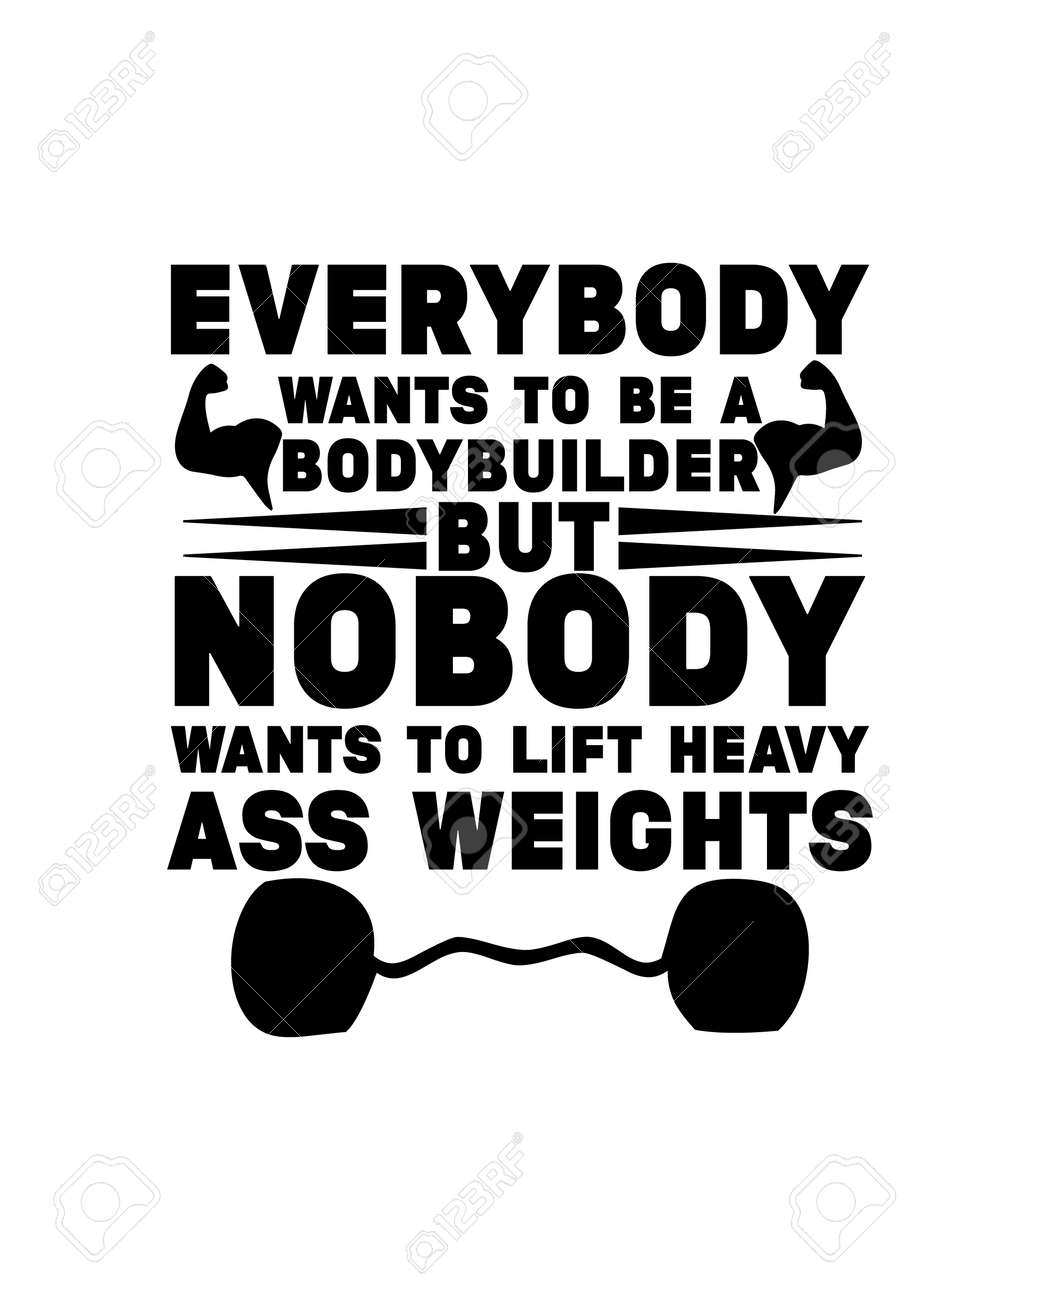 Everybody wants to be a bodybuilder but nobody wants to lift heavy weights. Hand drawn typography poster design. Premium Vector - 161994470